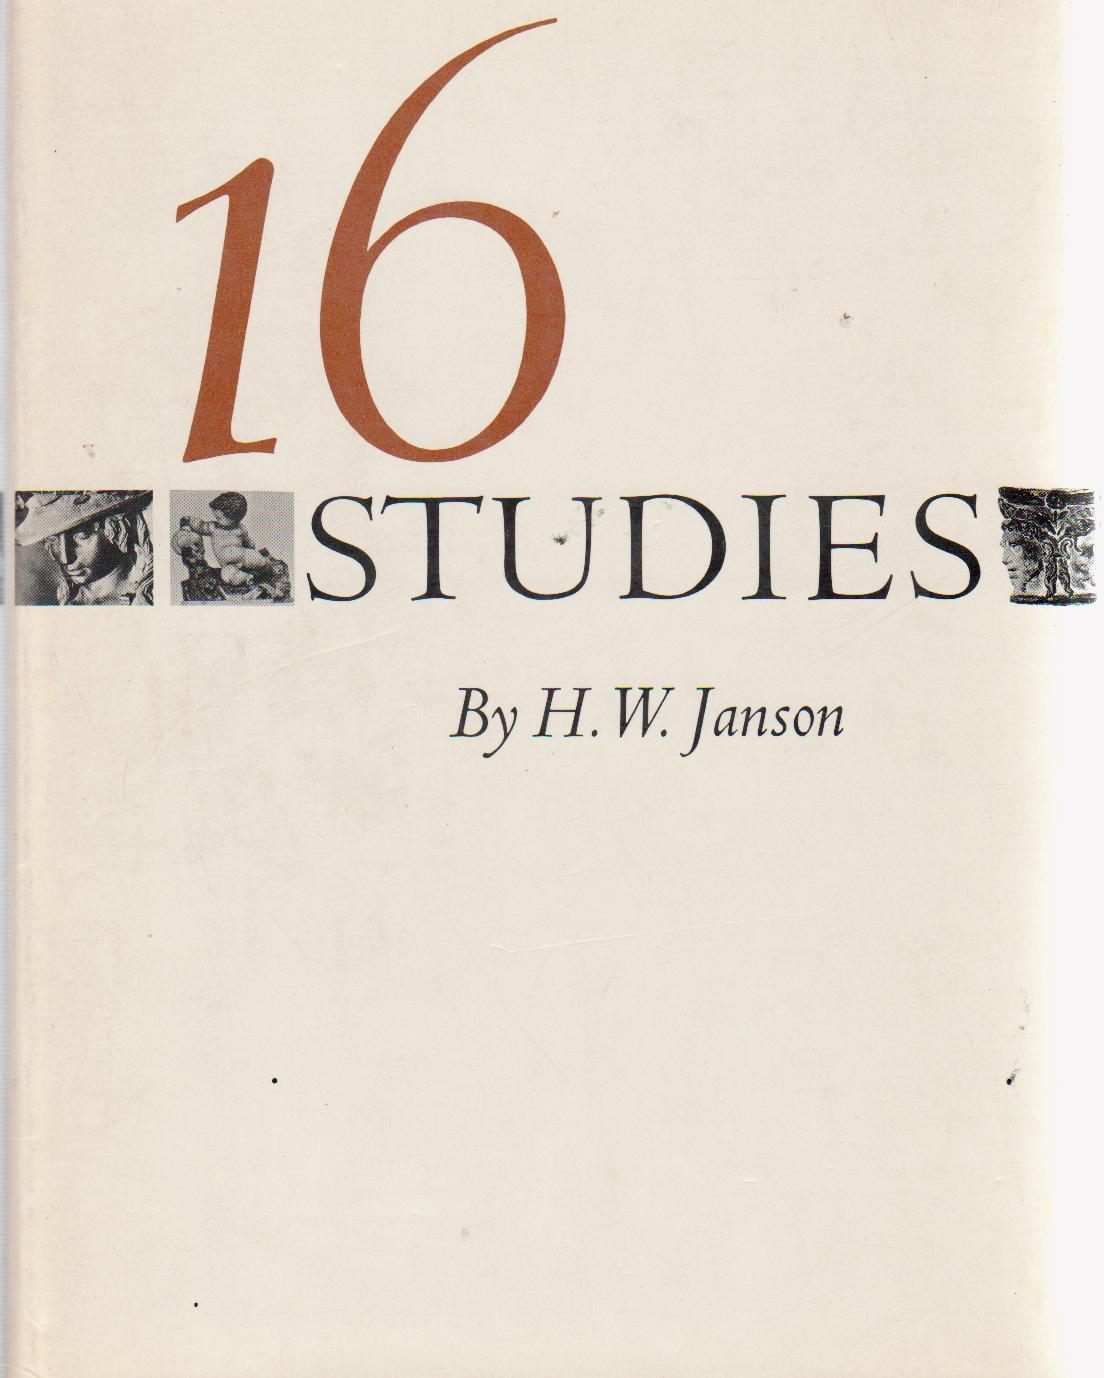 cover of 16 Studies by H W Janson